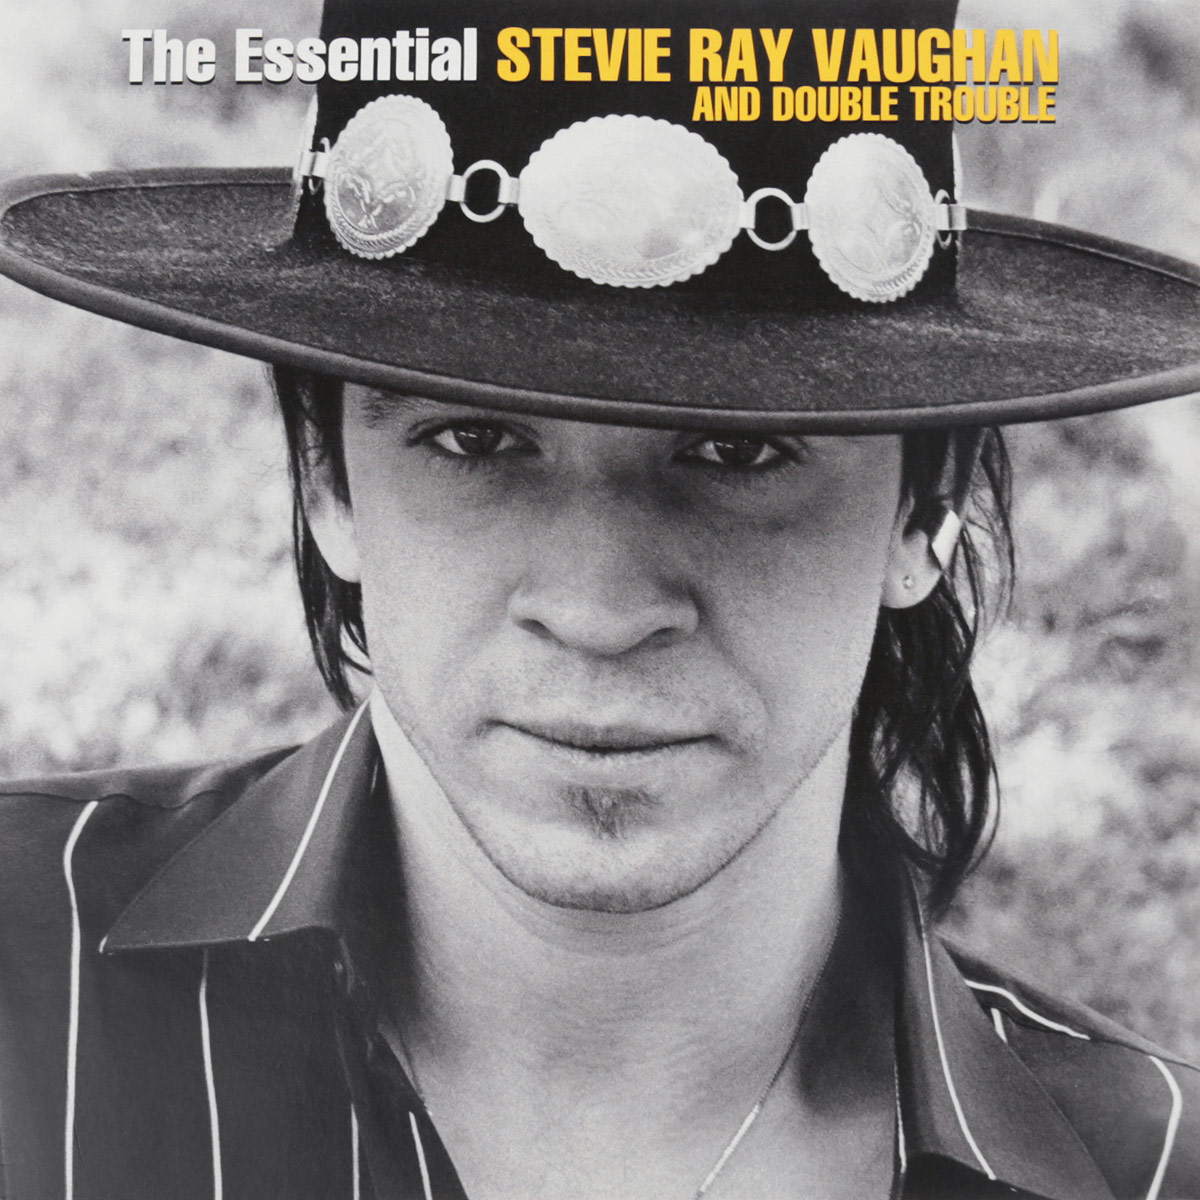 Stevie Ray Vaughan & Double Trouble Stivie Ray Vaughan And Double Trouble. The Essential (2 LP) стиви рэй воэн the double trouble stevie ray vaughan and double trouble texas flood page 4 page 4